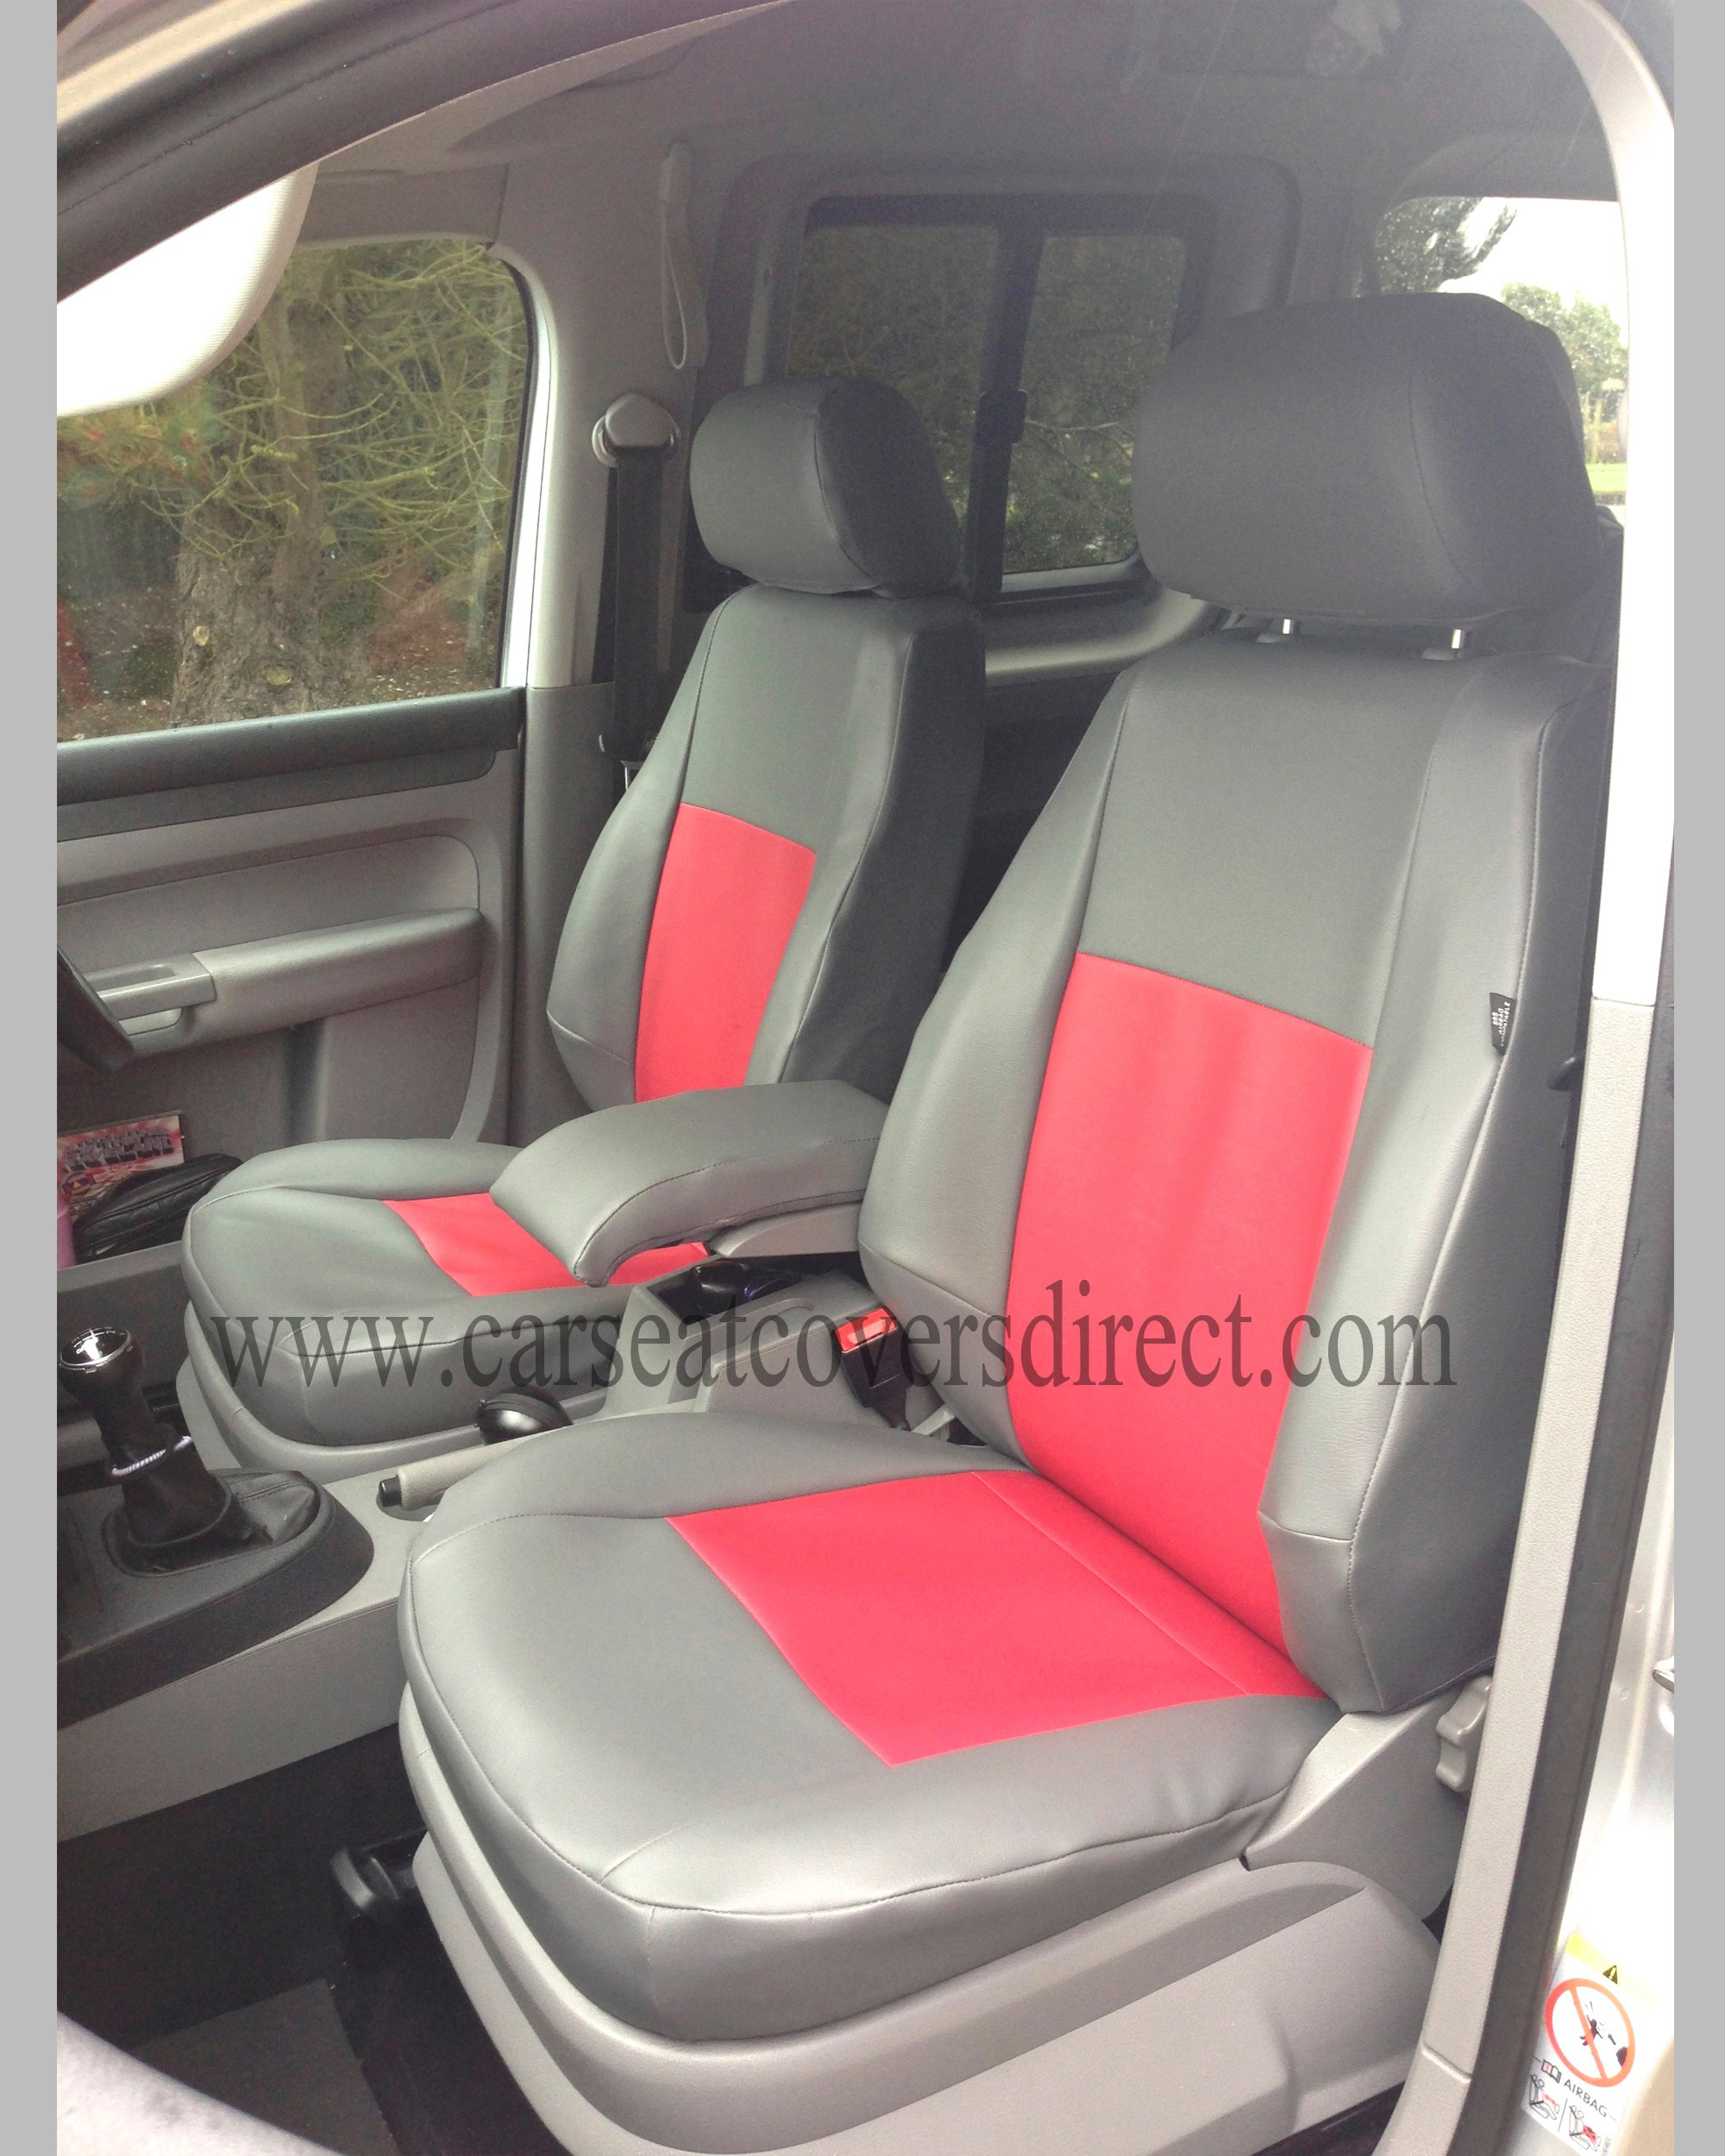 VOLKSWAGEN VW Caddy life grey & red Seat Covers